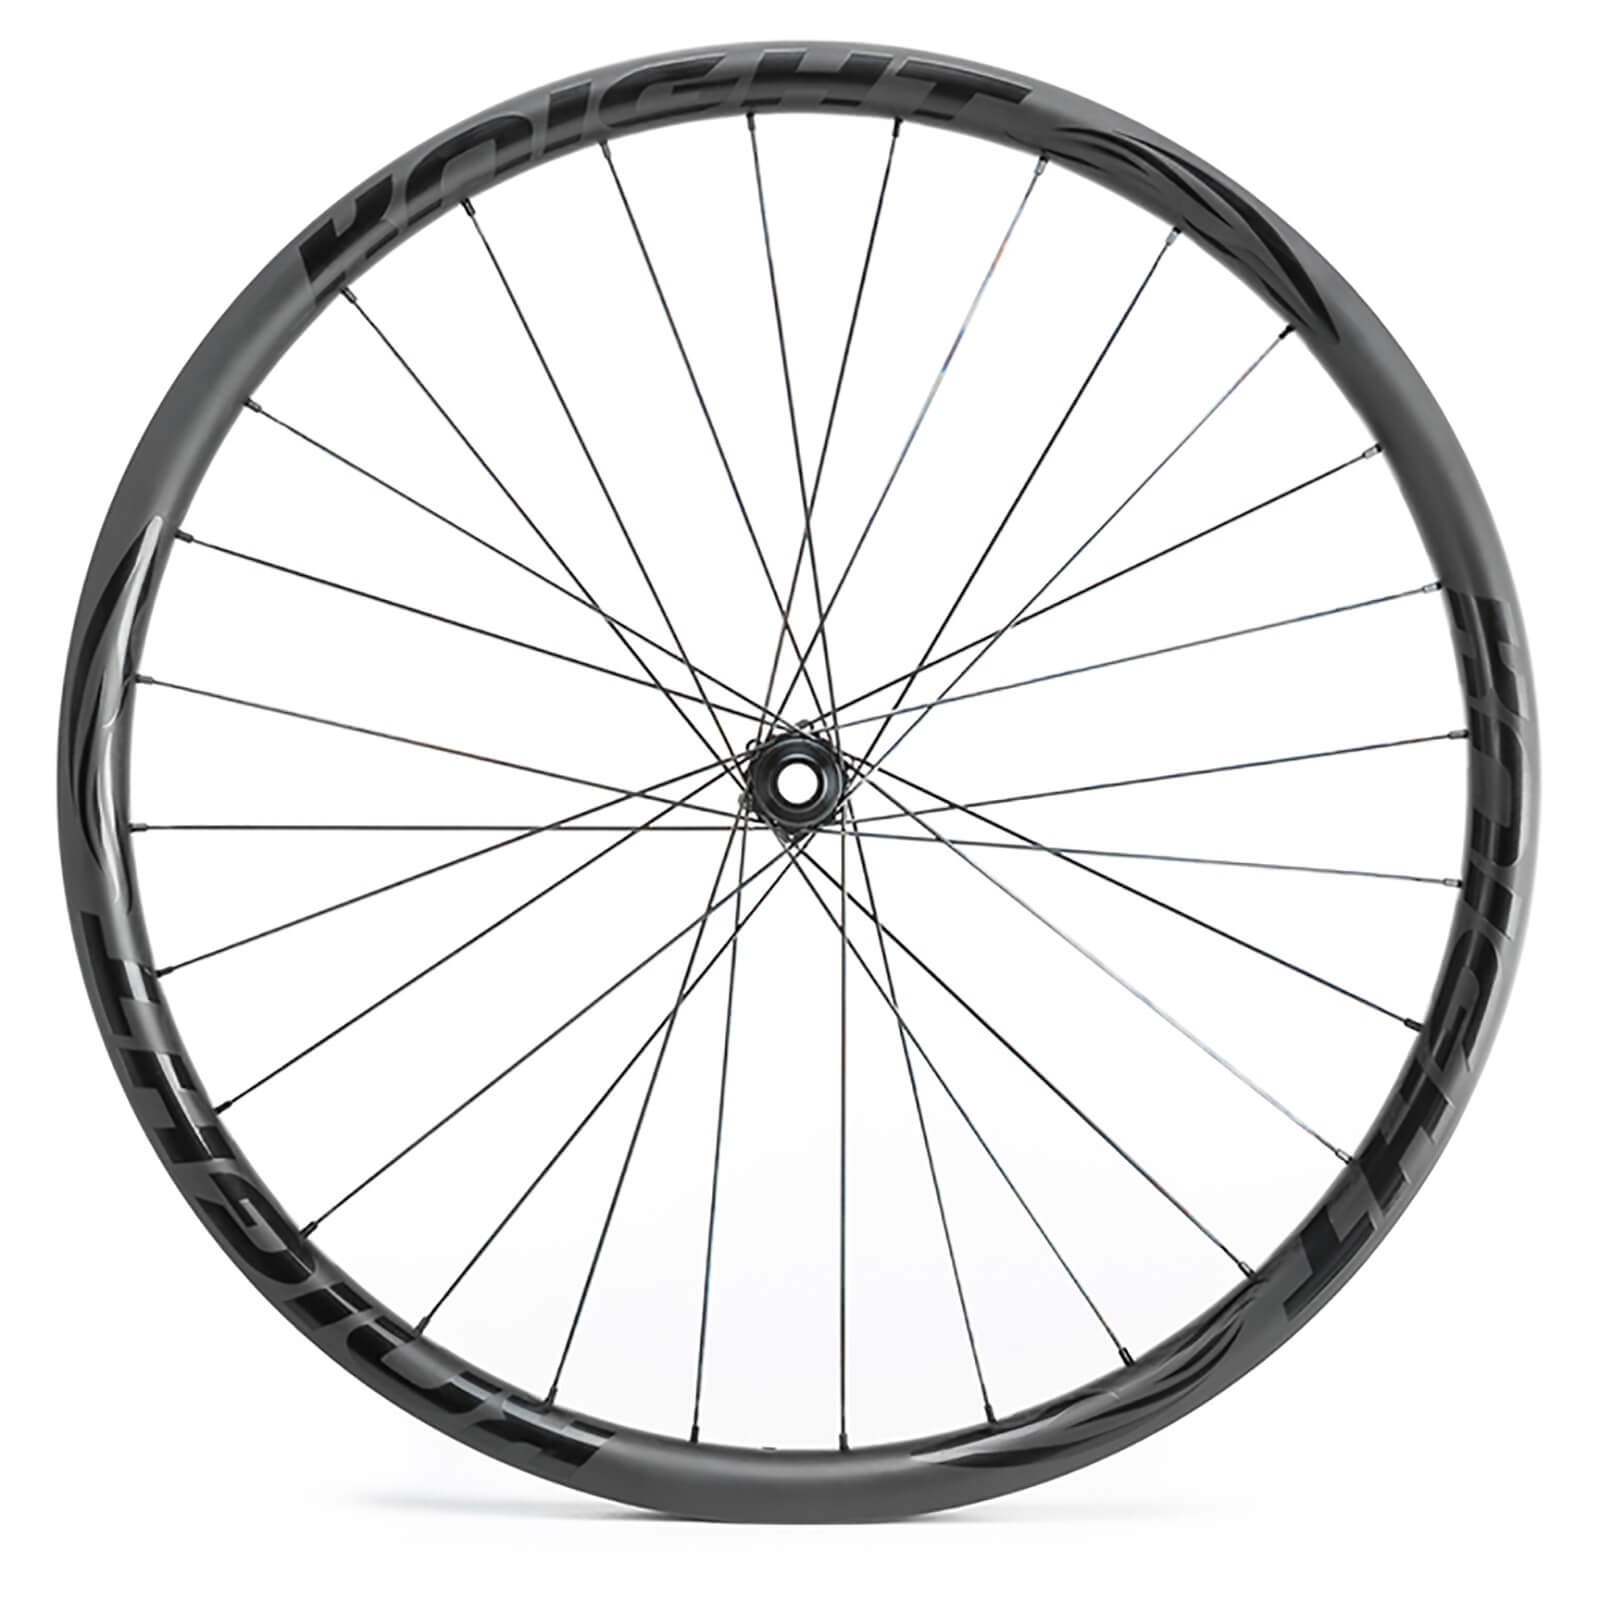 Knight Composites 27.5 Enduro Clincher Disc Rear Wheel